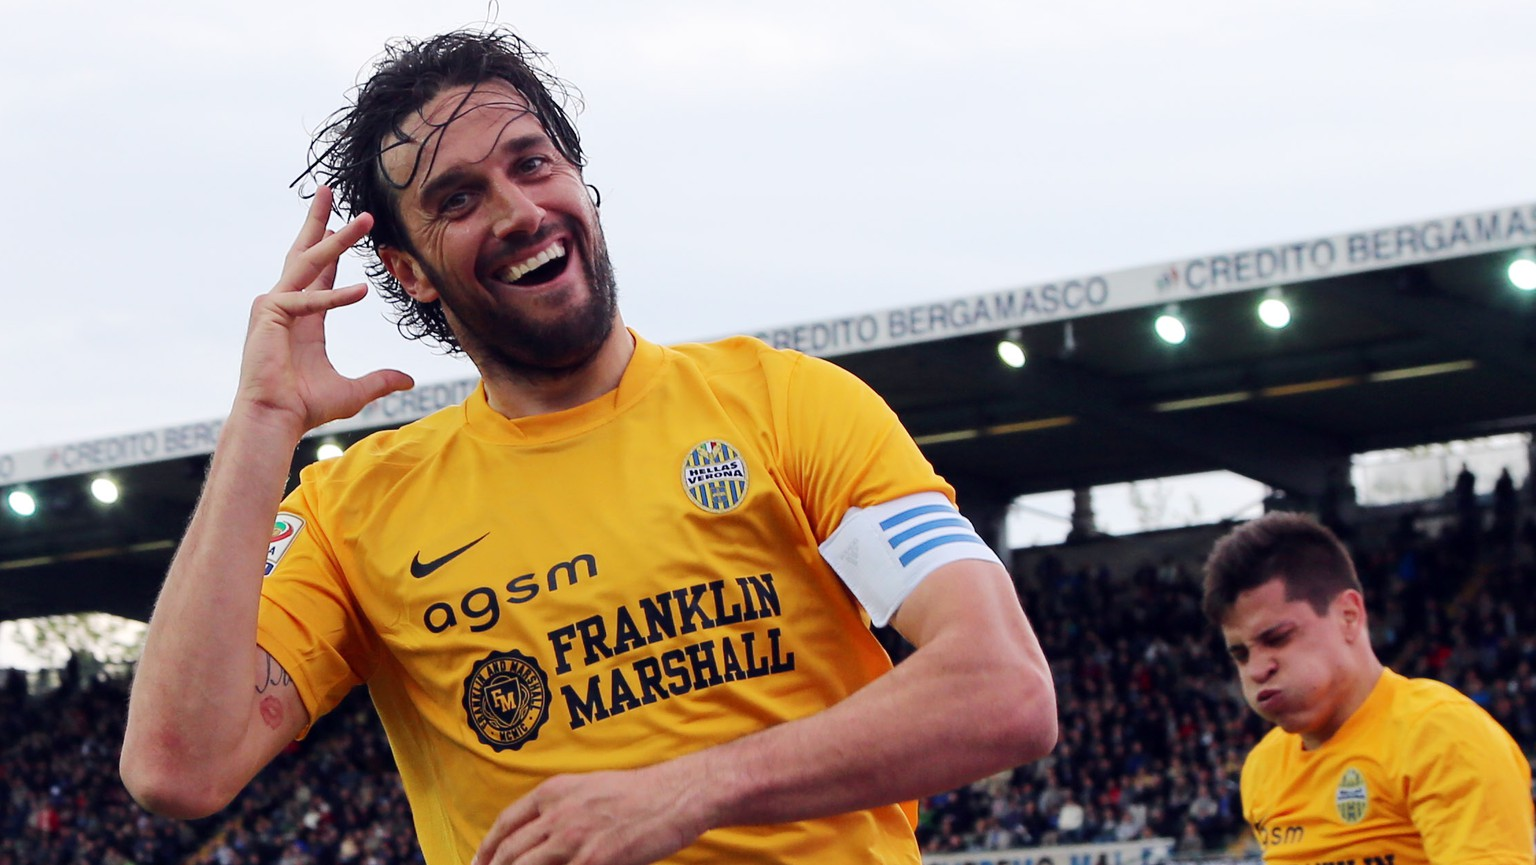 Hellas Verona's Luca Toni celebrates after scoring during a Serie A soccer match against Atalanta in Bergamo, Italy, Saturday, April 19, 2014. (AP Photo/Felice Calabro')